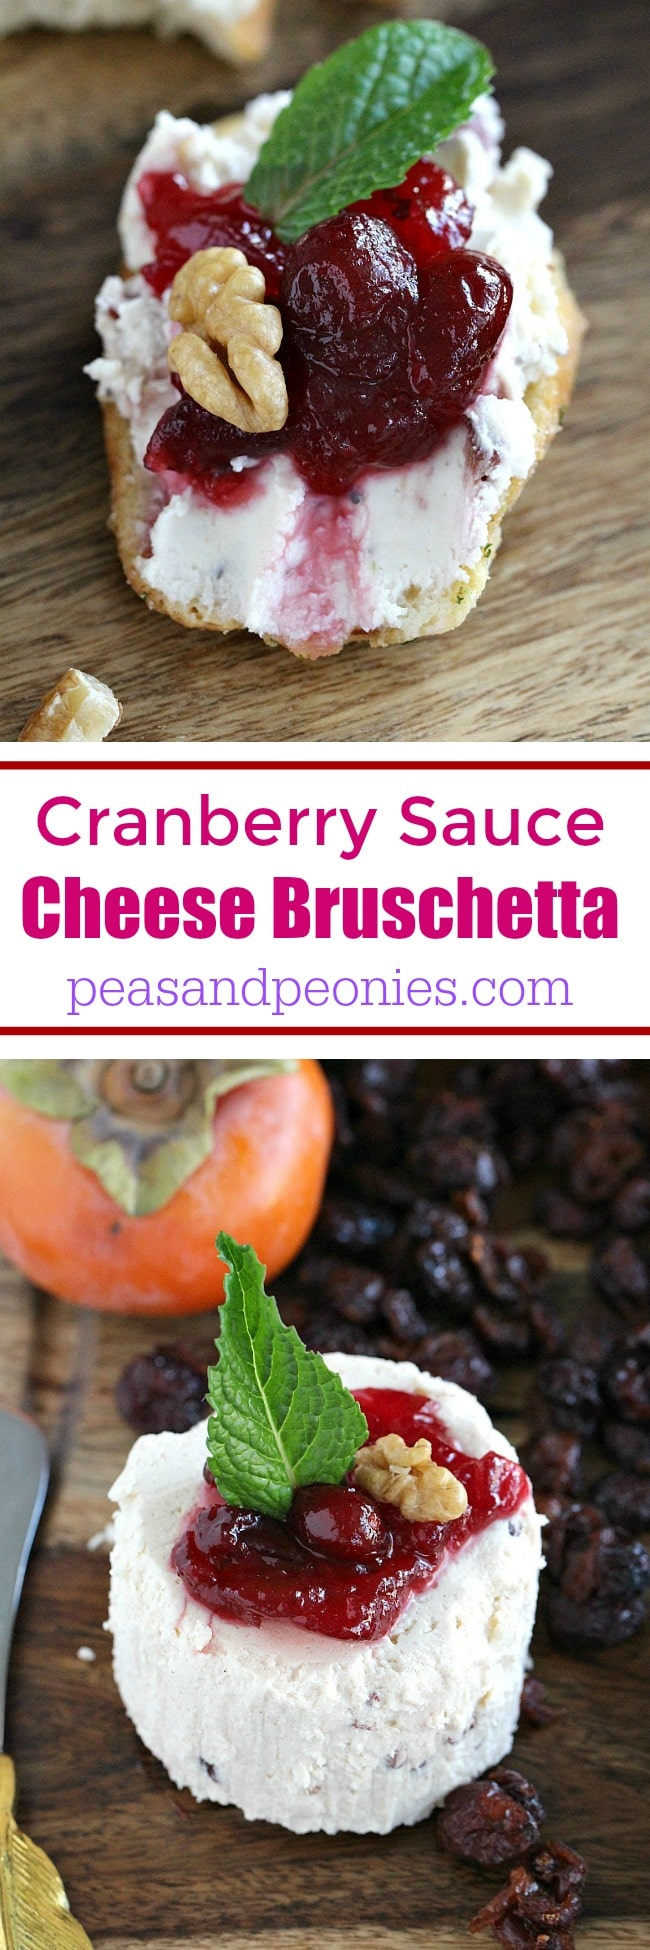 Easy home entertaining cheese platter ideas featuring seasonal produce and easy to make Cranberry Sauce Cheese Bruschetta.